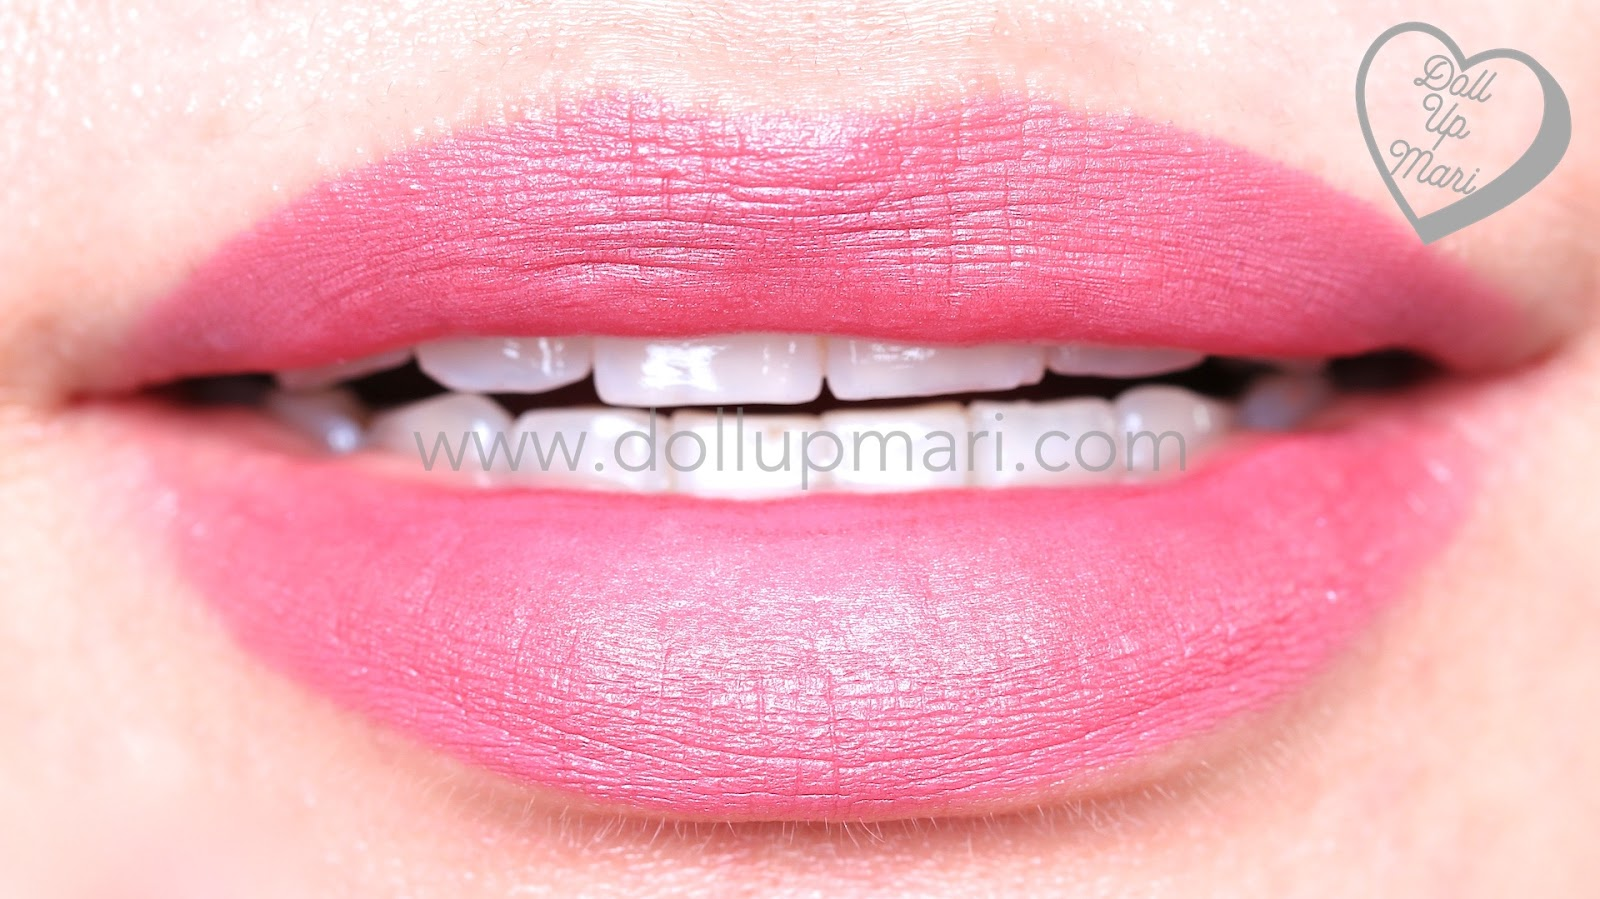 lip swatch of Silkygirl OMG! Powder Matte Lipcolor Lipstick (03-Mulberry)